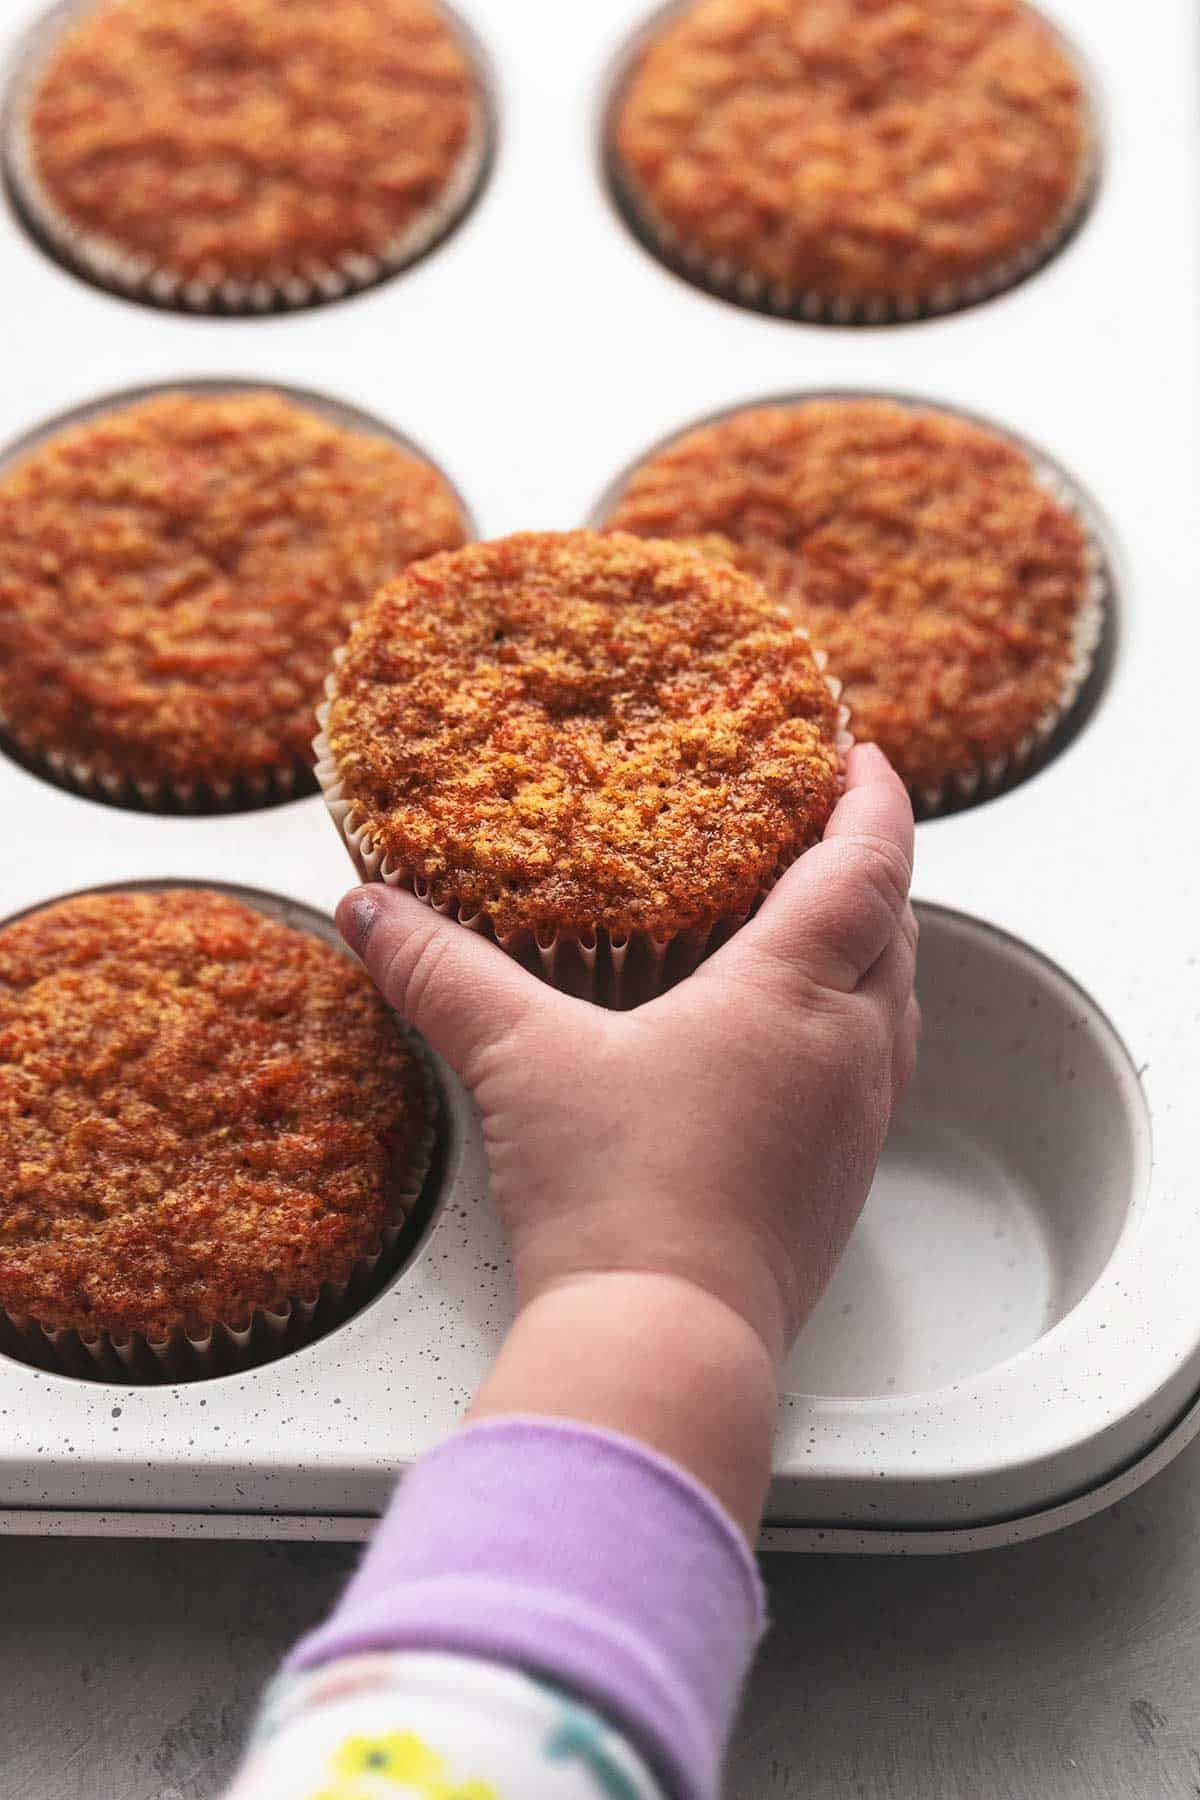 child's hand holding carrot muffin